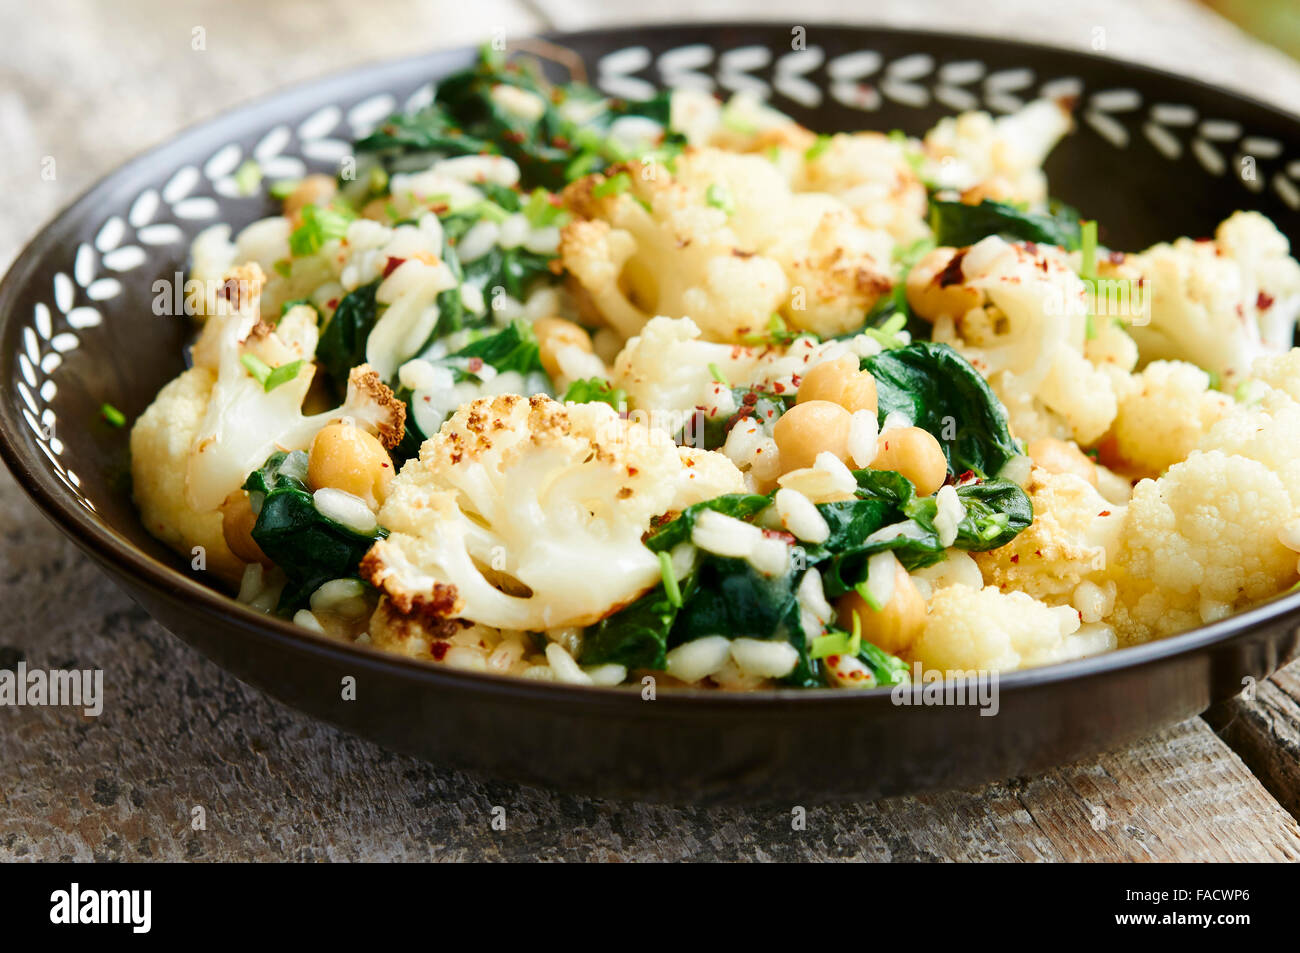 Roasted Cauliflower Risotto with Spinach and ChickpeasStock Photo